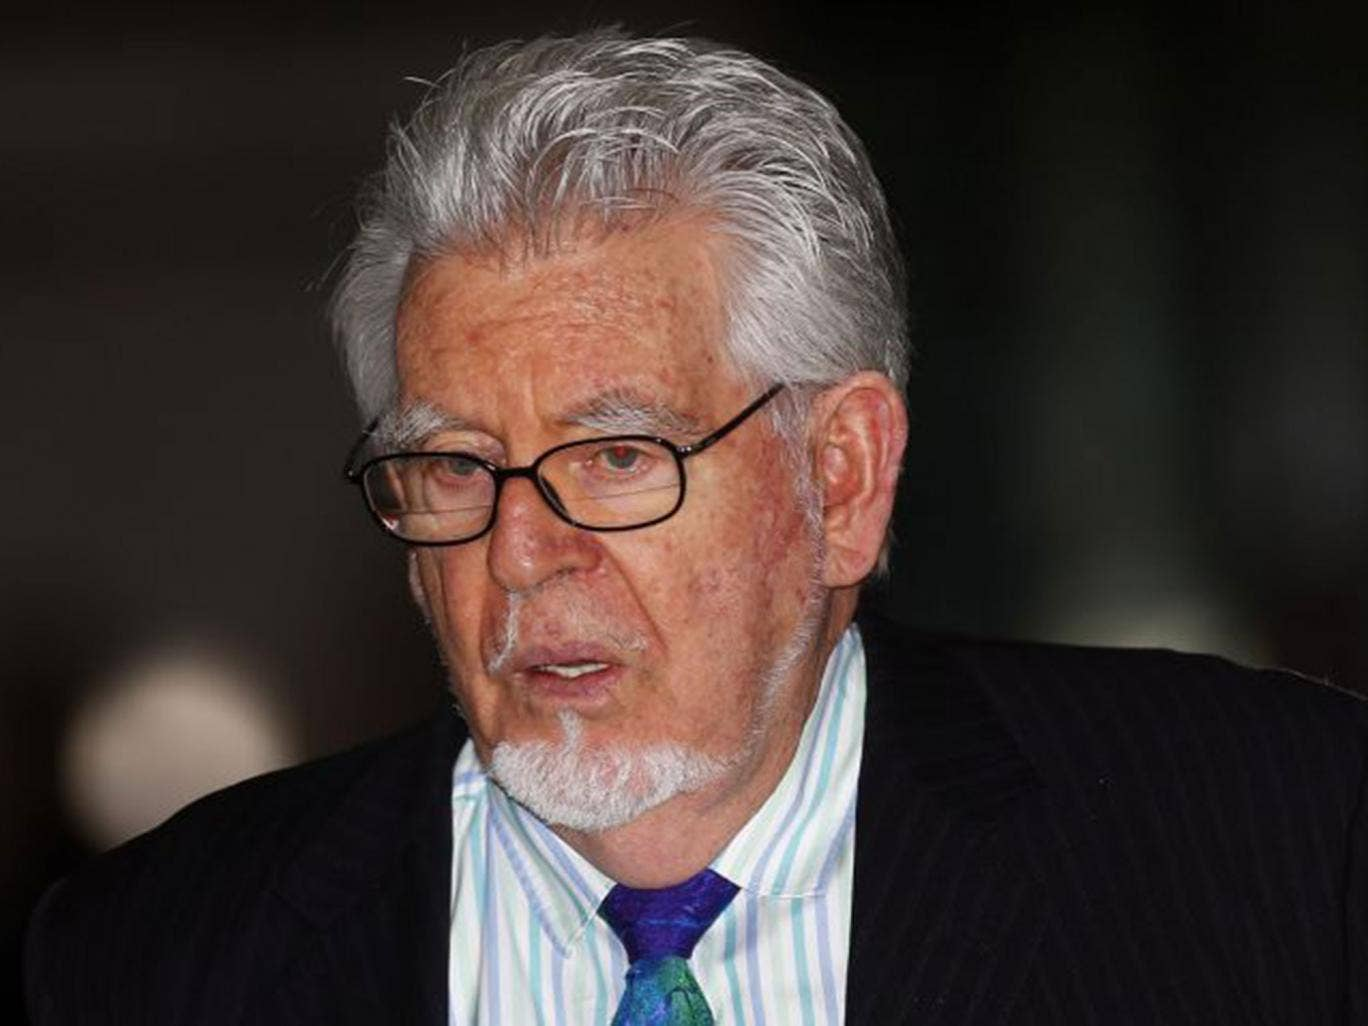 Rolf Harris is accused of 12 counts of indecent assault against four women spanning some 18 years